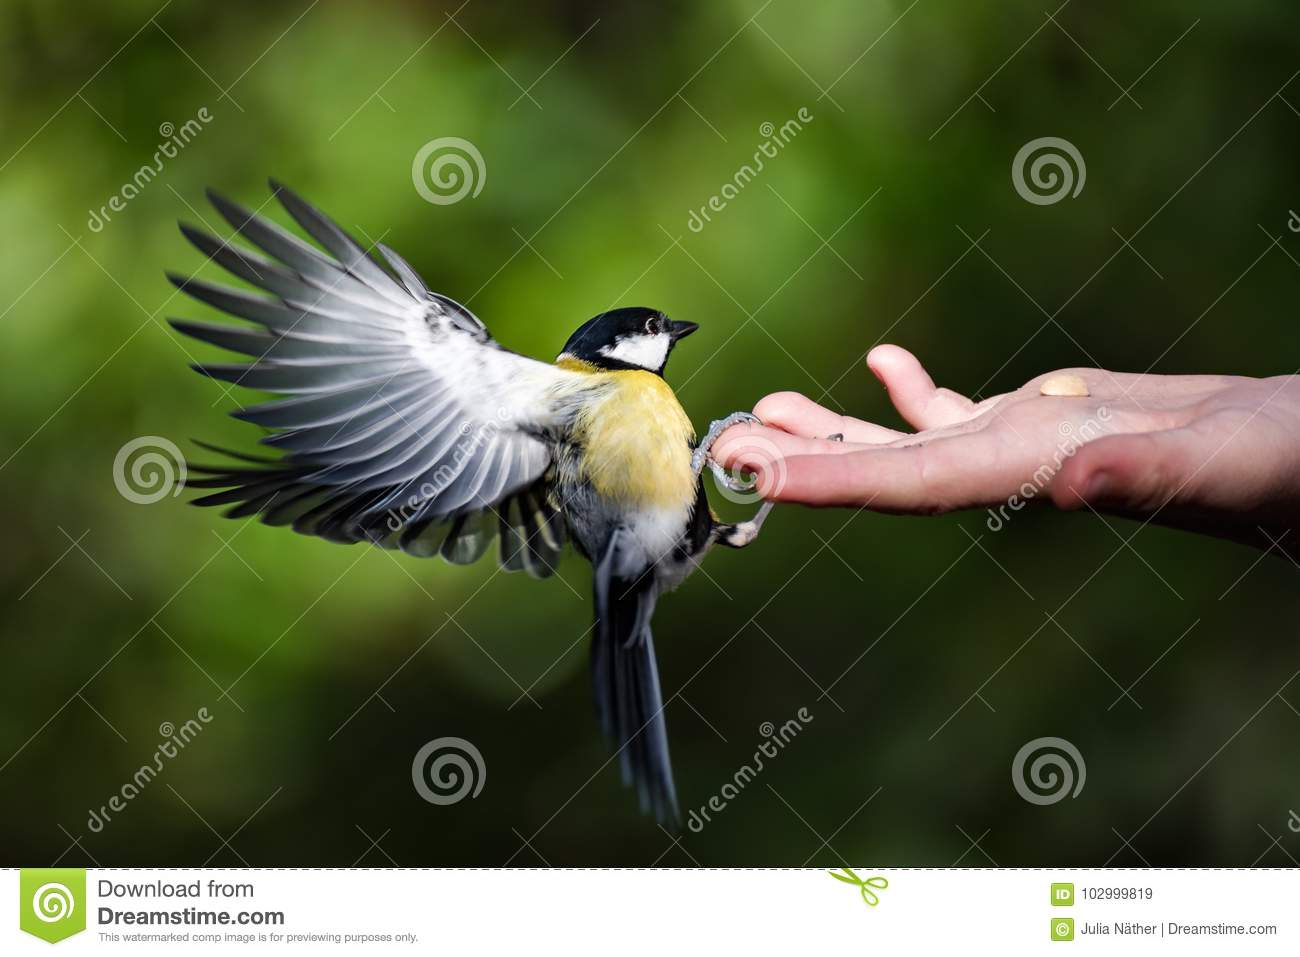 Tit can be fed by hand